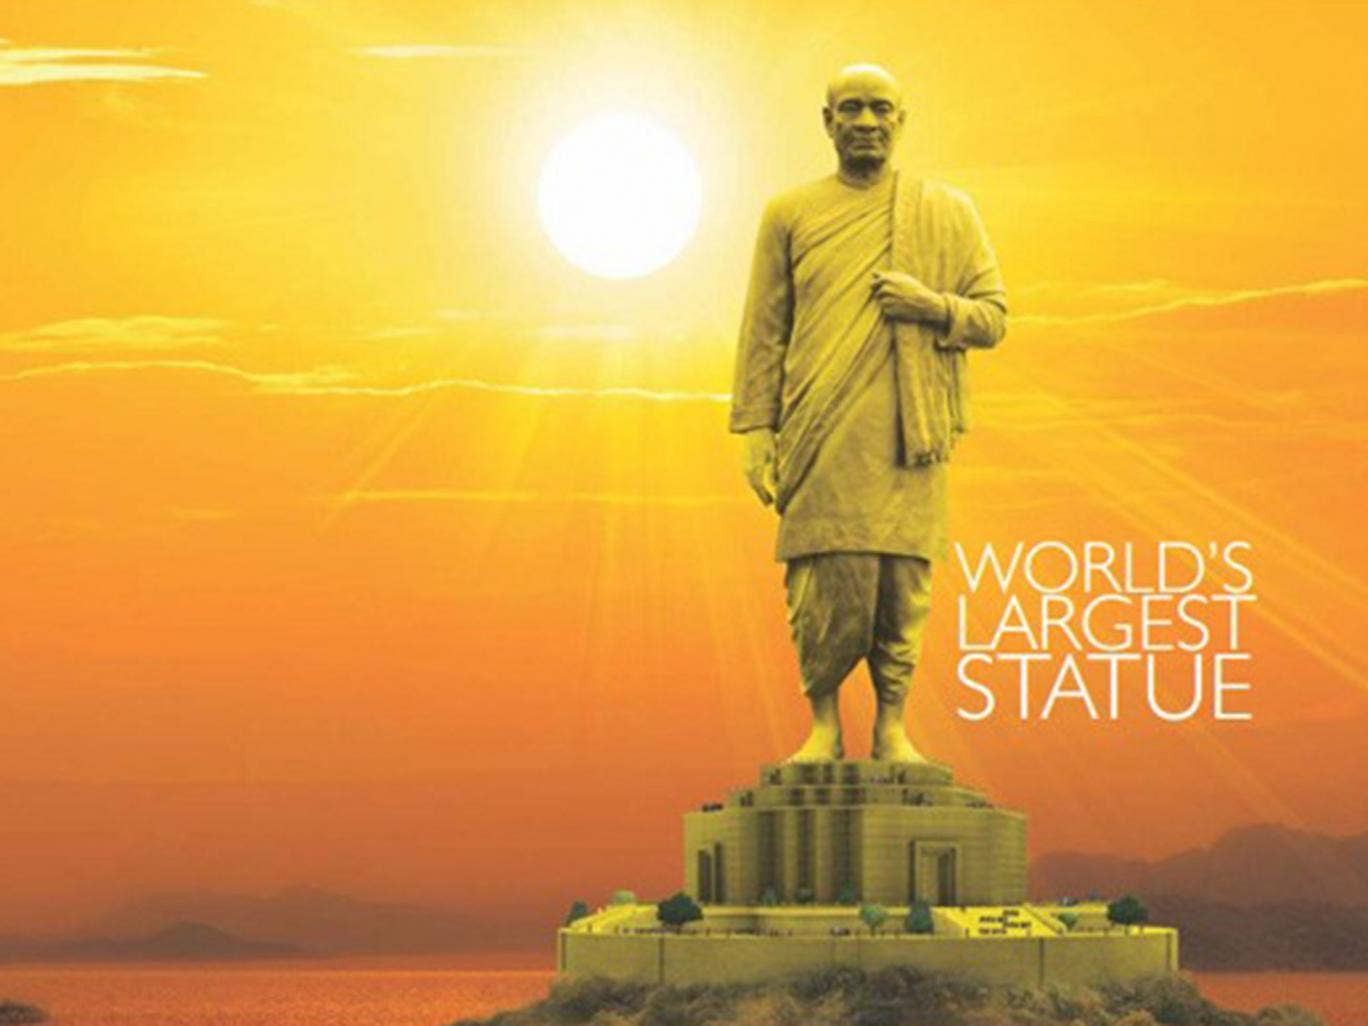 The plan is to build the statue of in the state of Gujarat